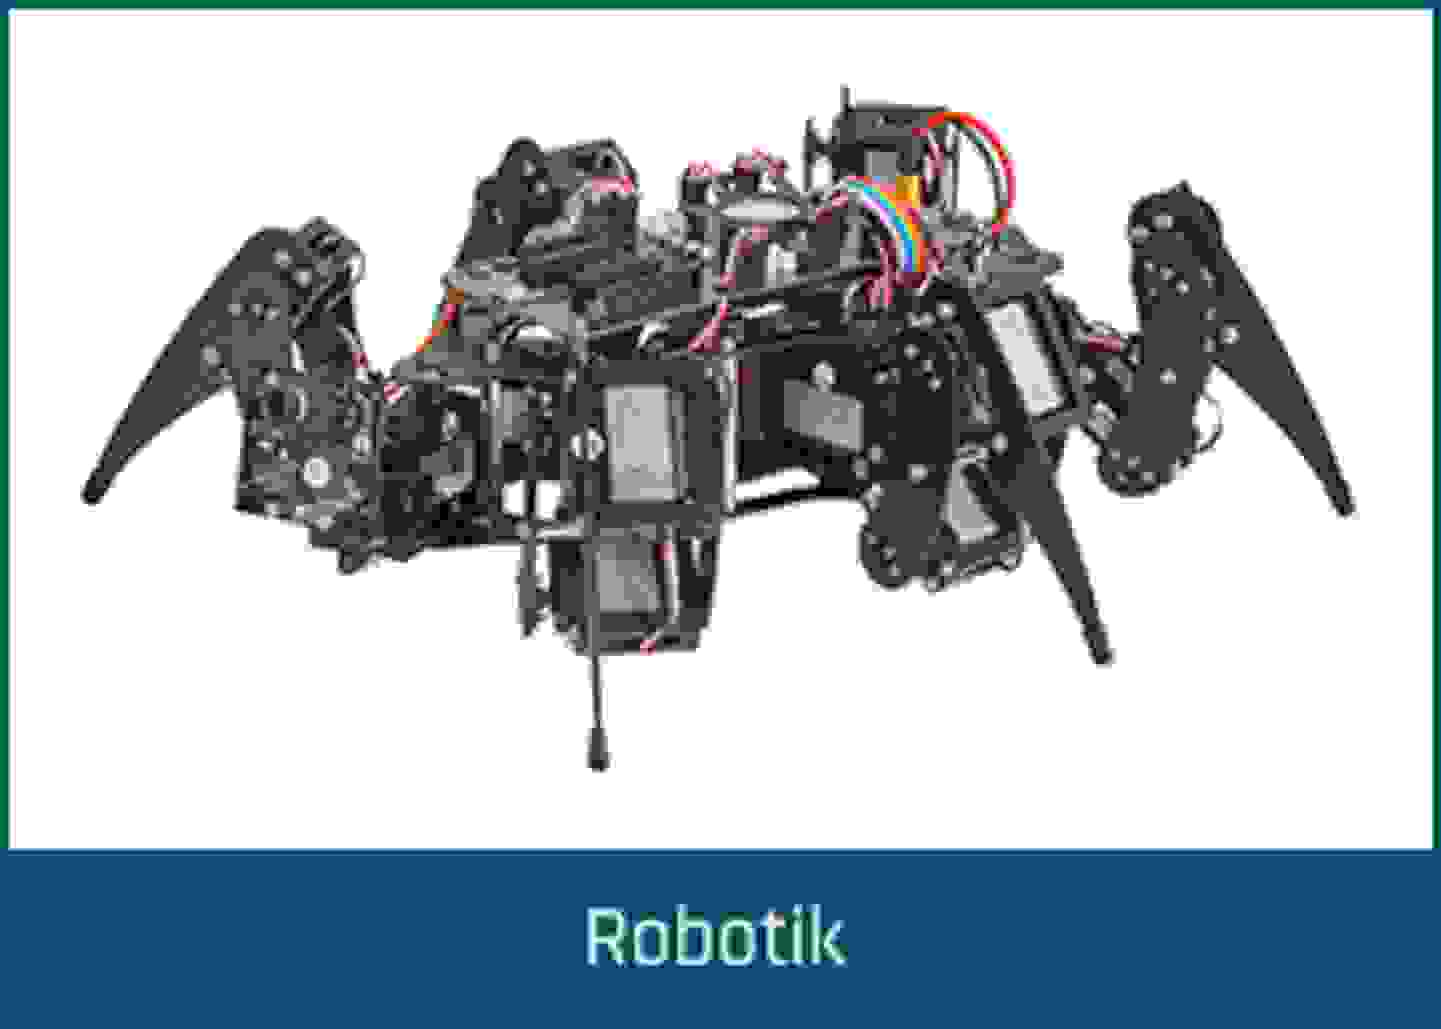 MAKERFACTORY Robotik